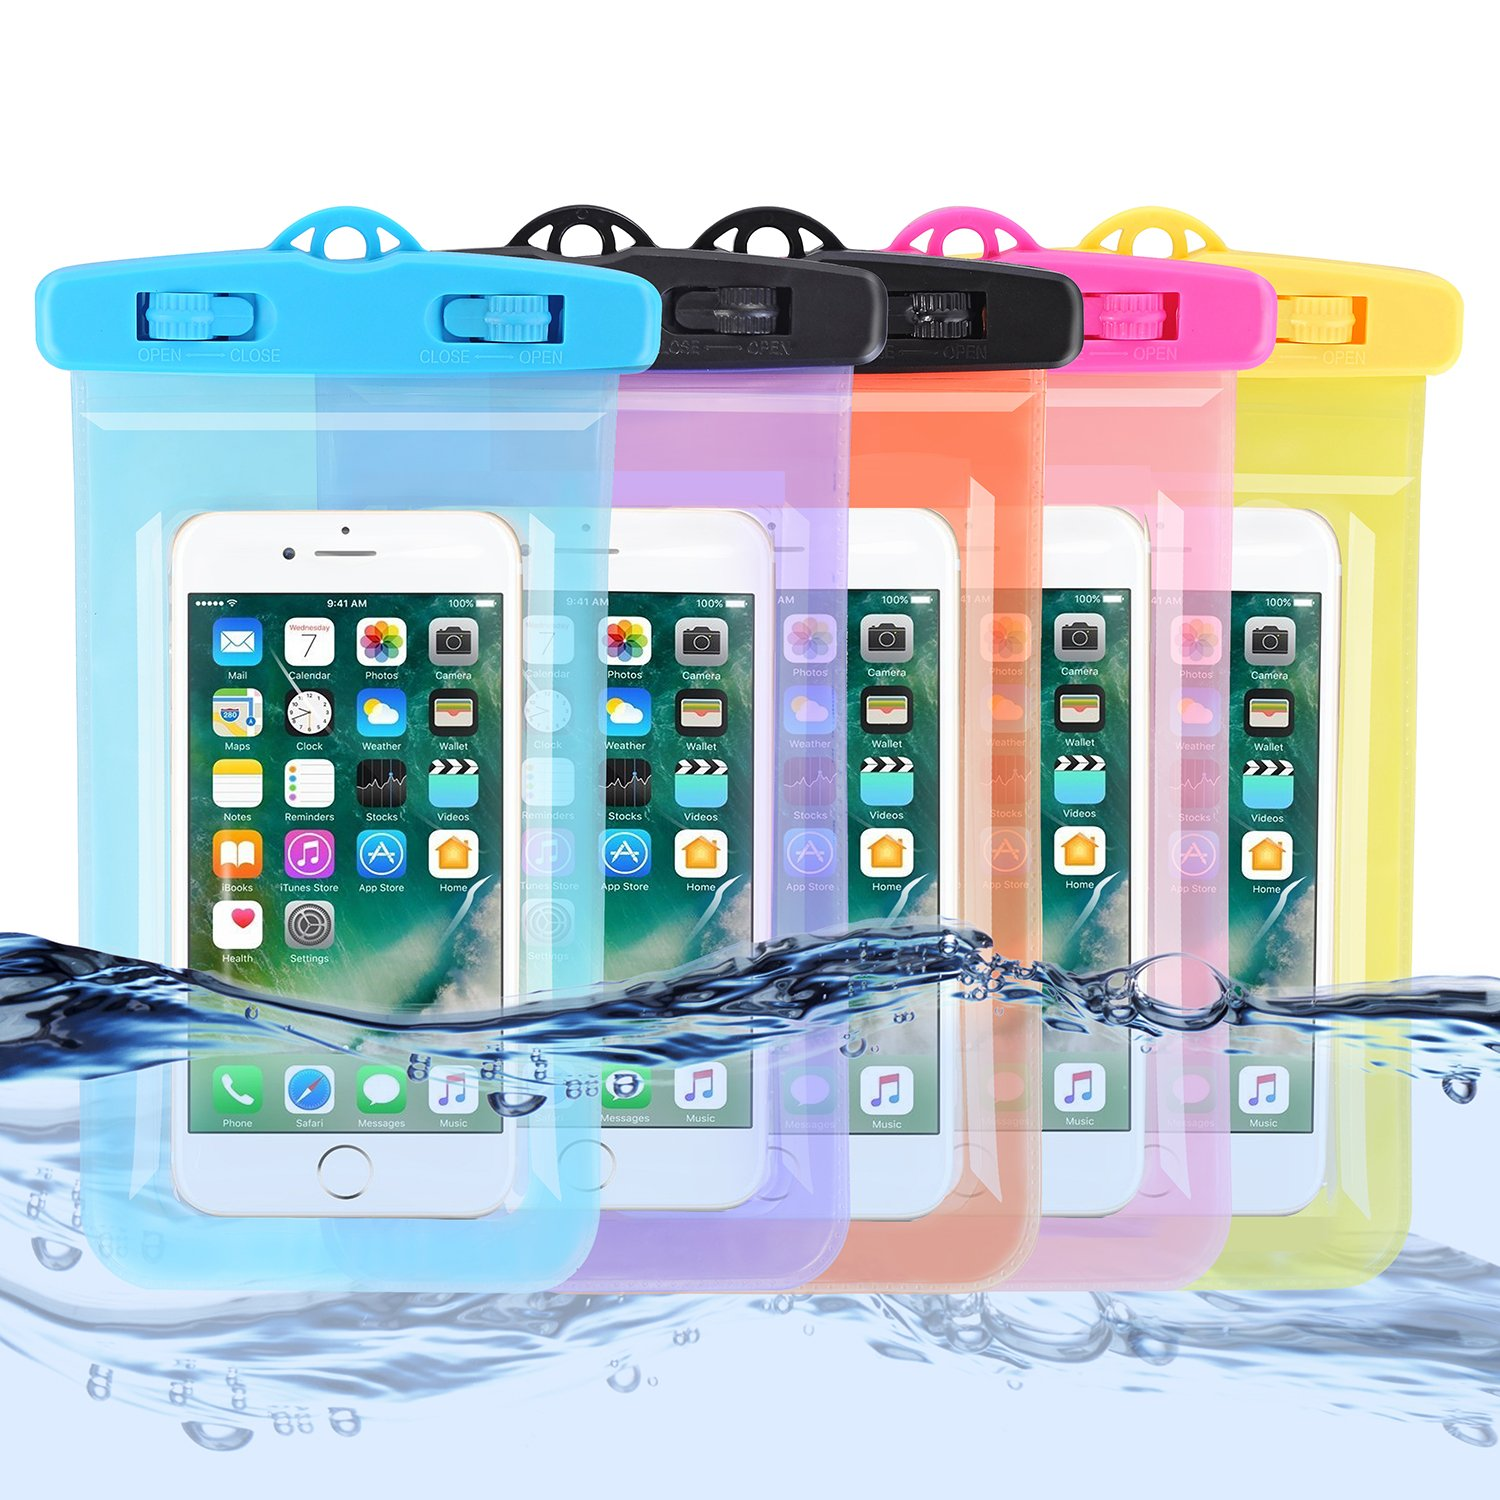 Aggice Transparent Waterproof Case, 5 pack Dry bag, Pouch for iphone 6/6s/SE, Samsung Galaxy S7/S7 edge,Note 3, HTC LG Sony Nokia Motorola Blow 5.5'' diagonal (1. 5 Pack)